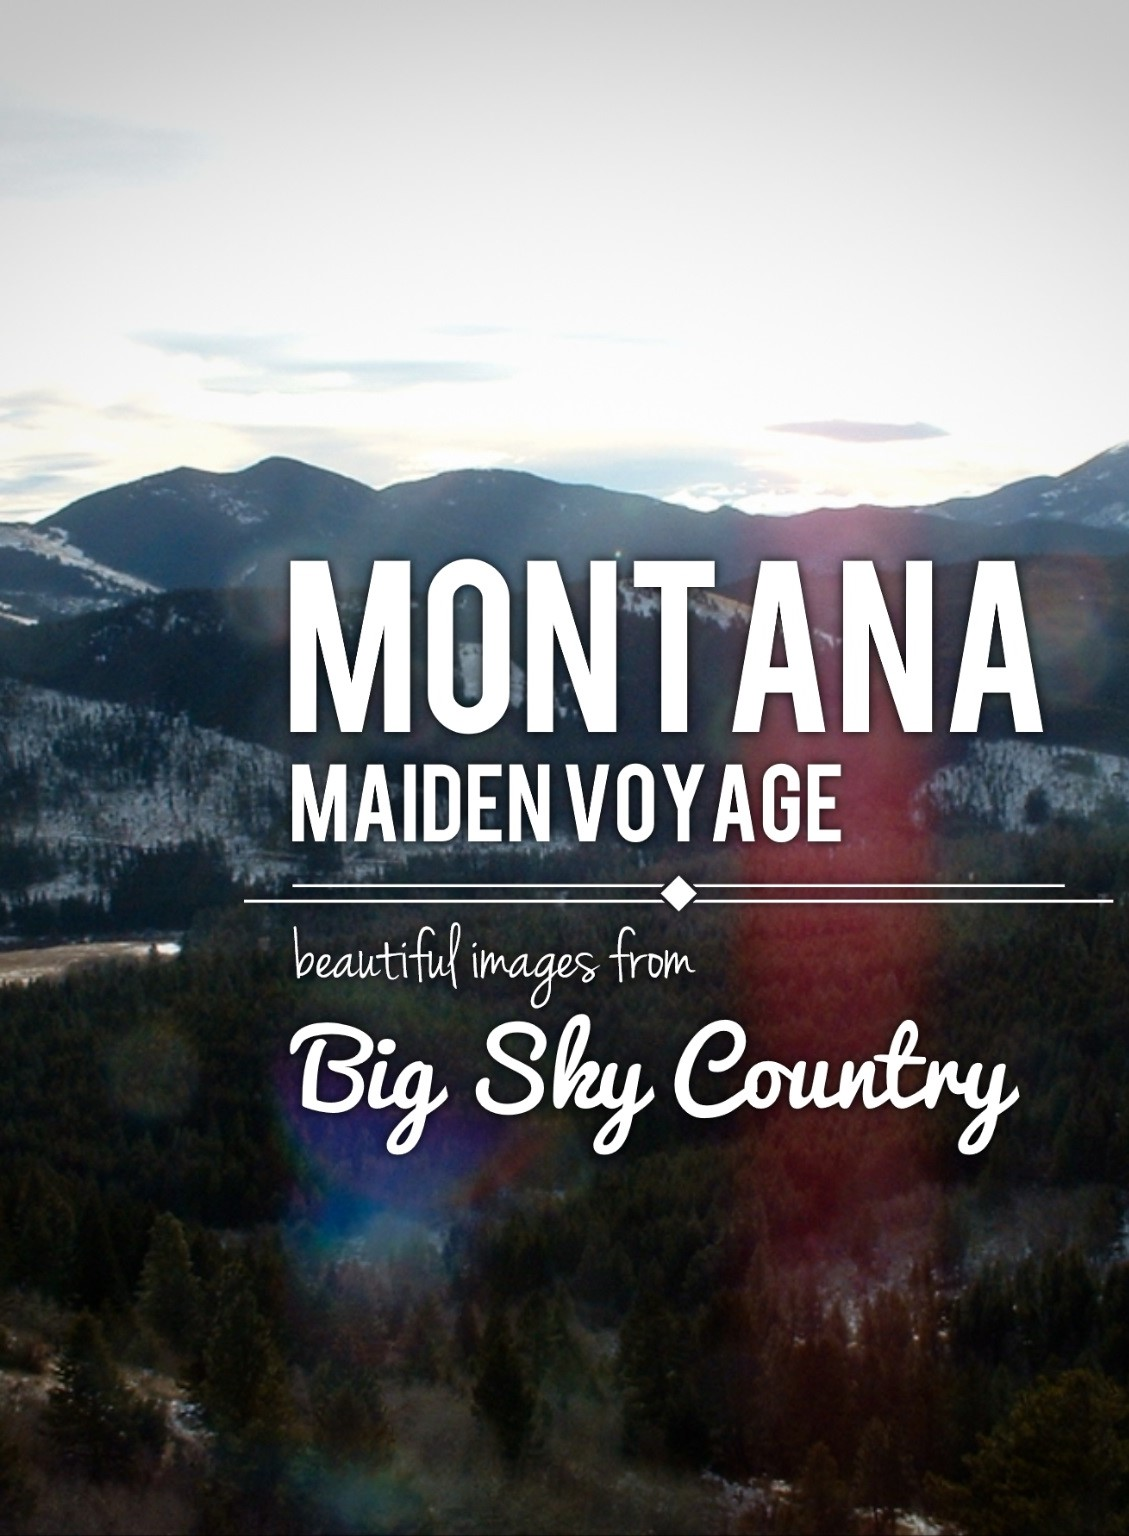 MONTANA MAIDEN VOYAGE - Once upon a time, we got really tired of the rat race and decided to sell it all and migrate to the easy going land of Montana. Big Sky Country. A magical place where people wave with all five fingers and time just seems to go slower. Mountain time.